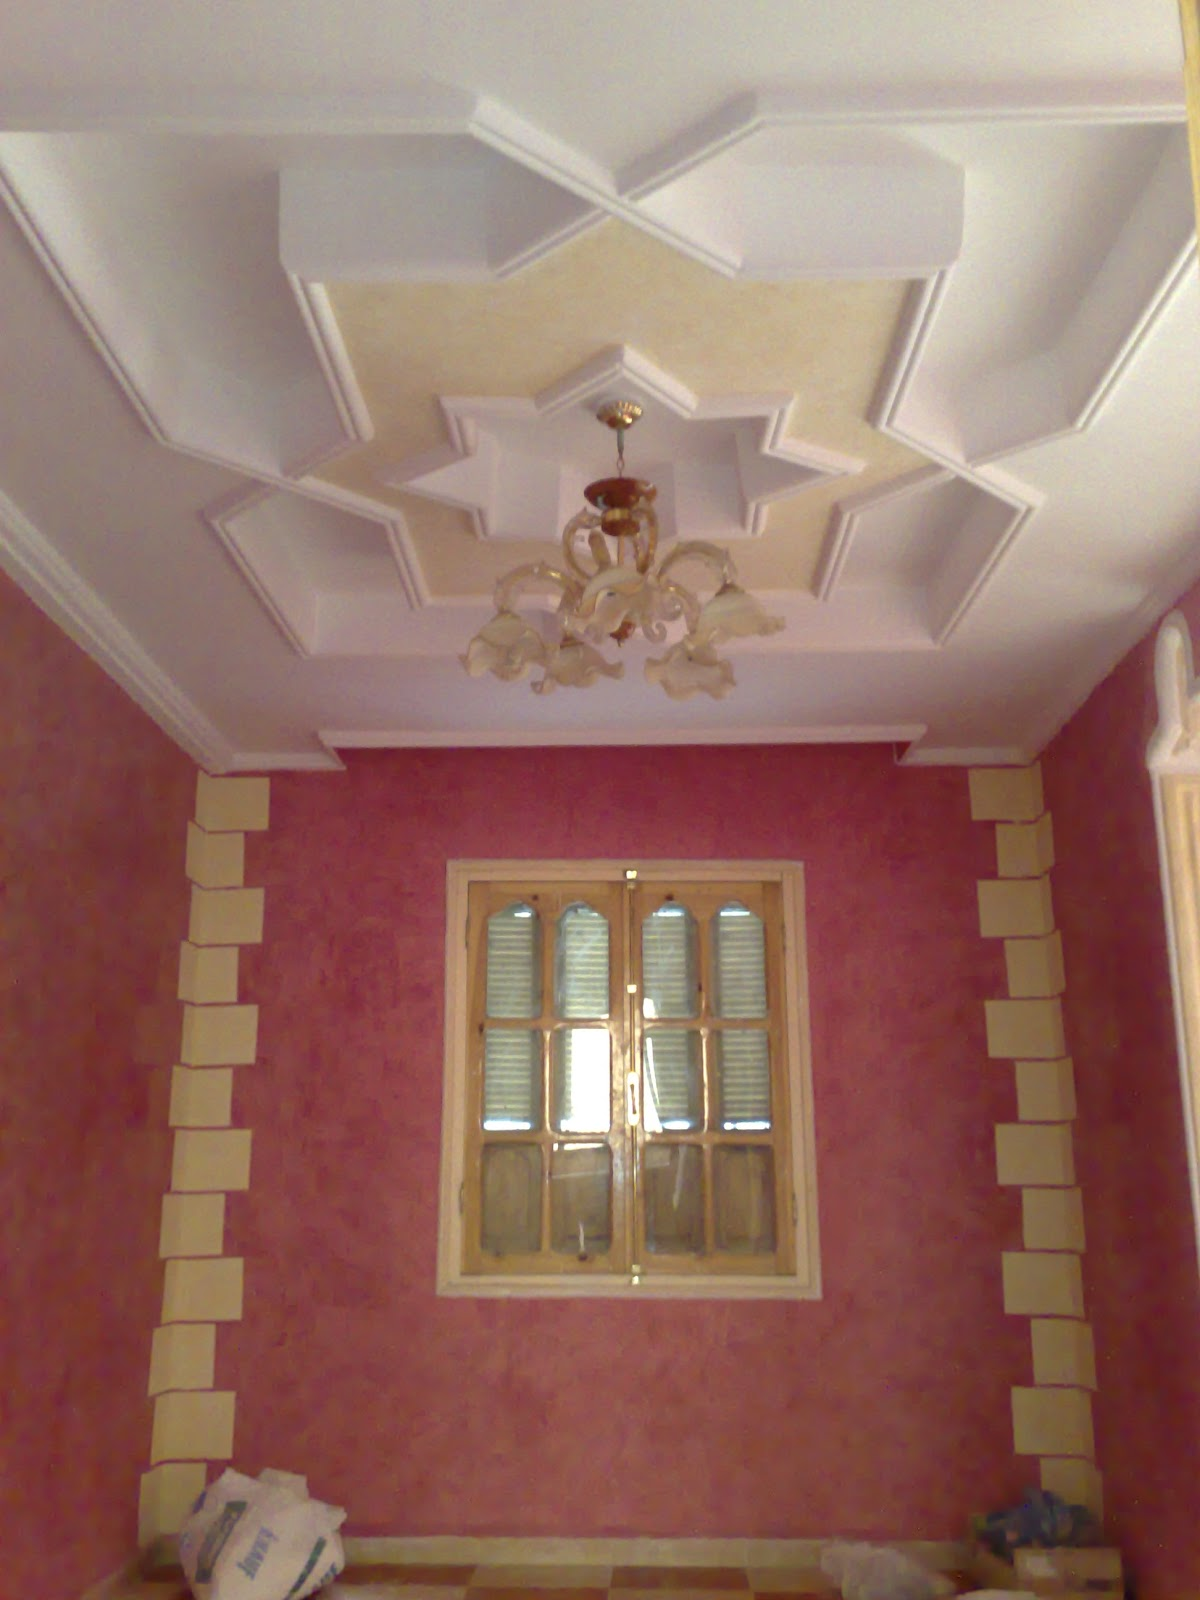 Decoration plafond platre platre for Decoration de plafond en platre